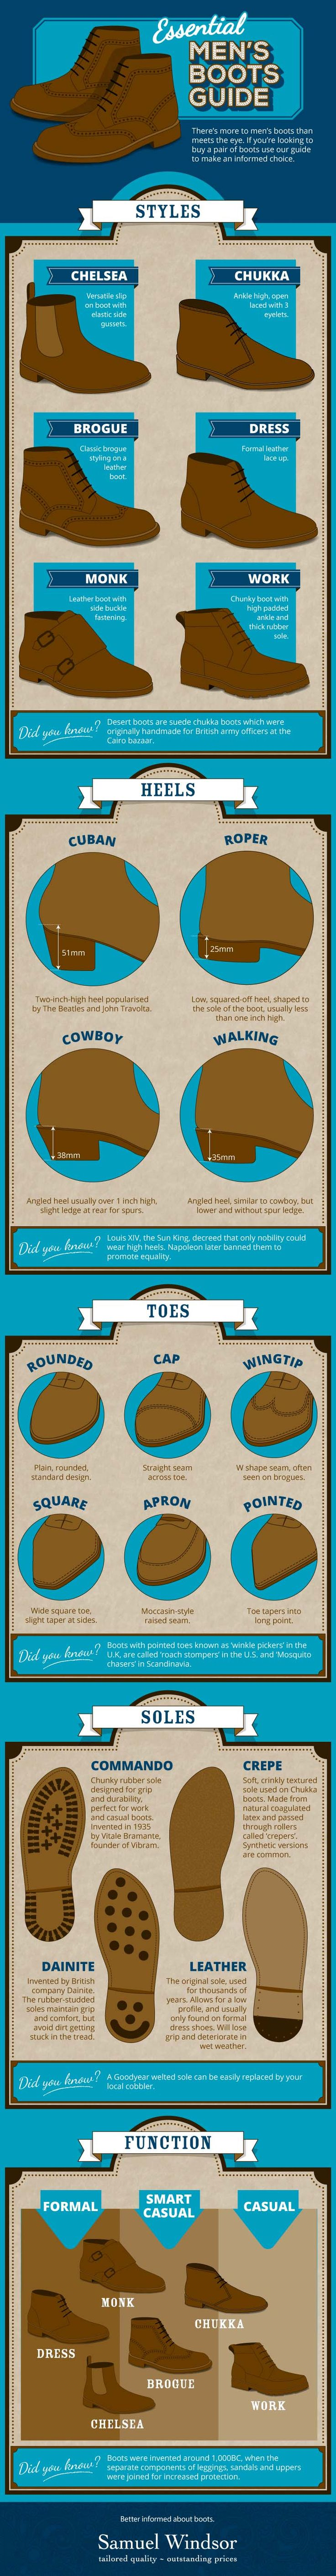 Do you know your Chukkas from your Chelsea boots? Should you choose crepe or commando soles? What are the six toe types available? Men's boots are available in a wide choice of styles, and it can be hard to choose the right pair. Take a look at this easy-to-use men's boots guide from Samuel Windsor and you'll be boot boss in no time.